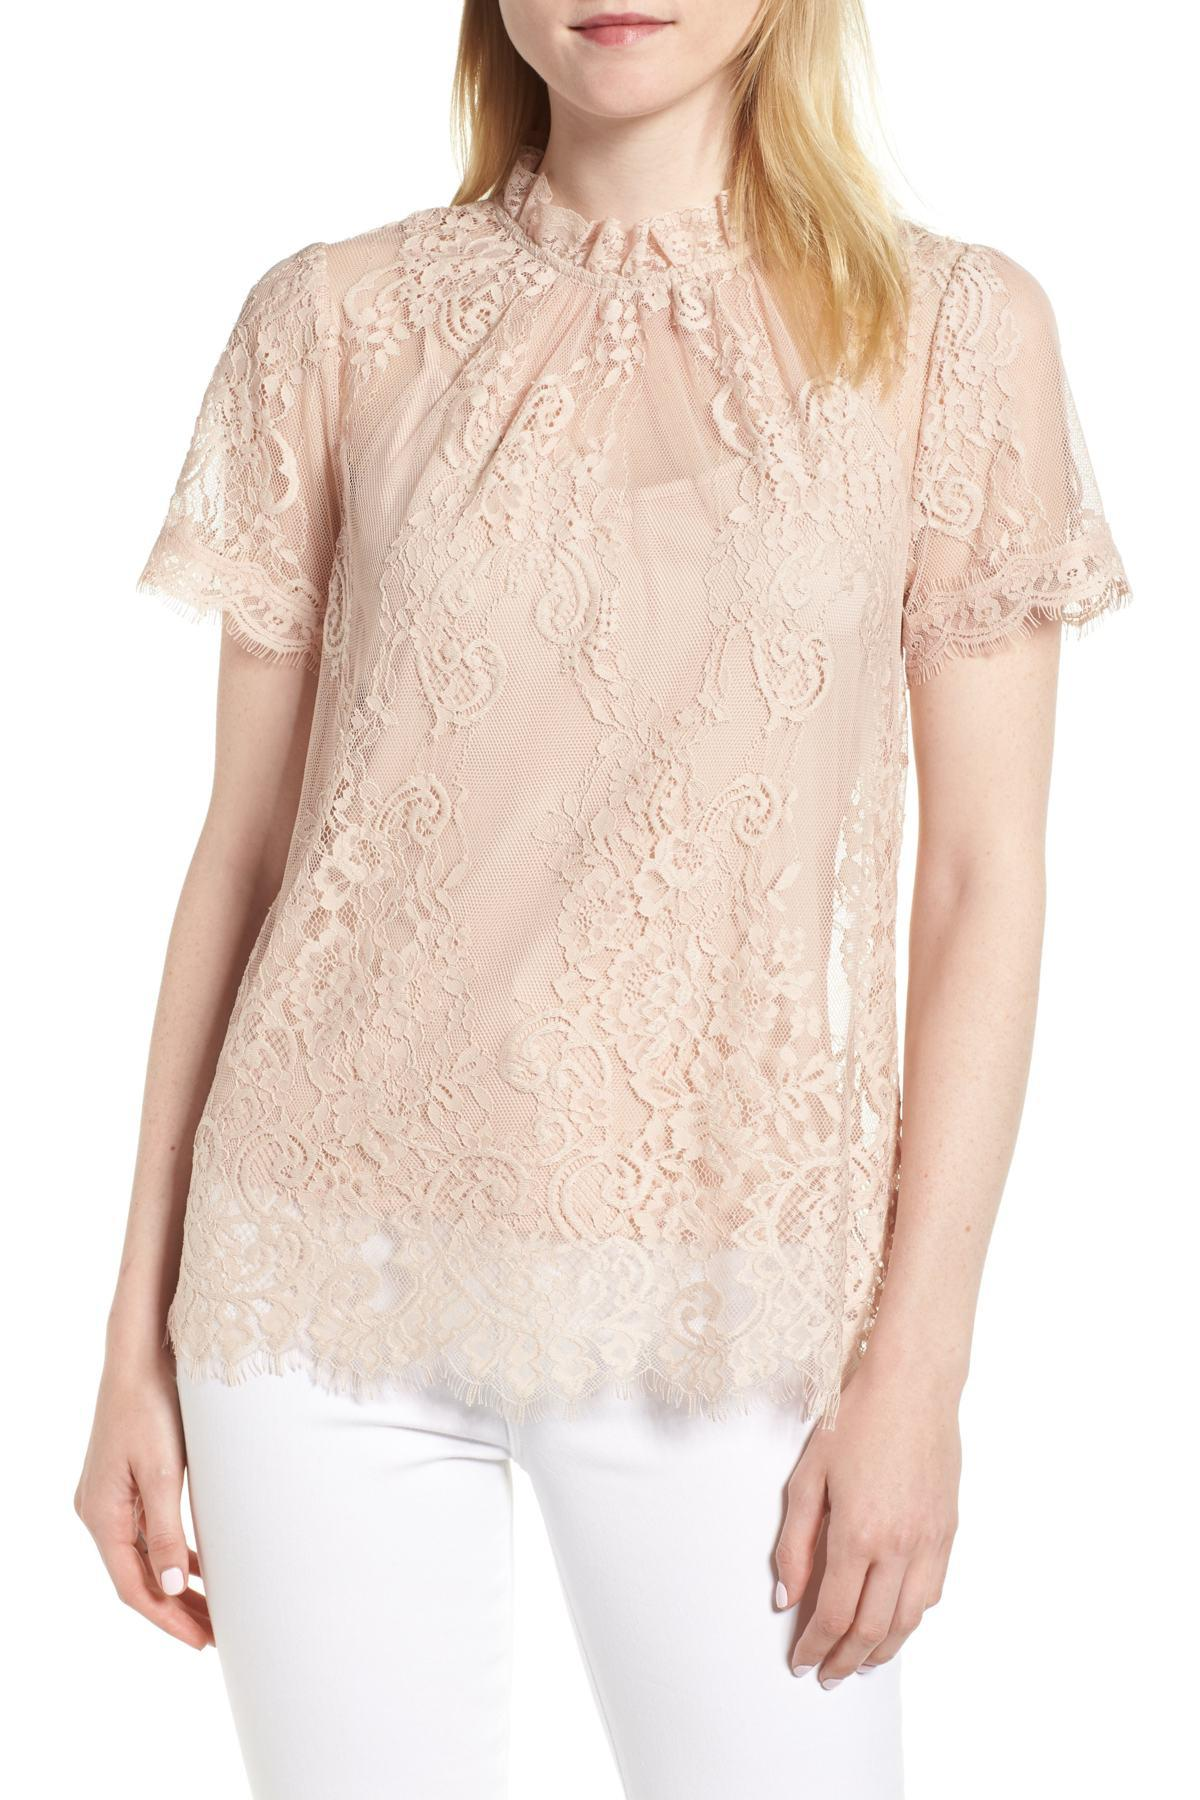 2195e284fb4826 Chelsea28 - Pink Lace Ruffle Collar Blouse - Lyst. View fullscreen